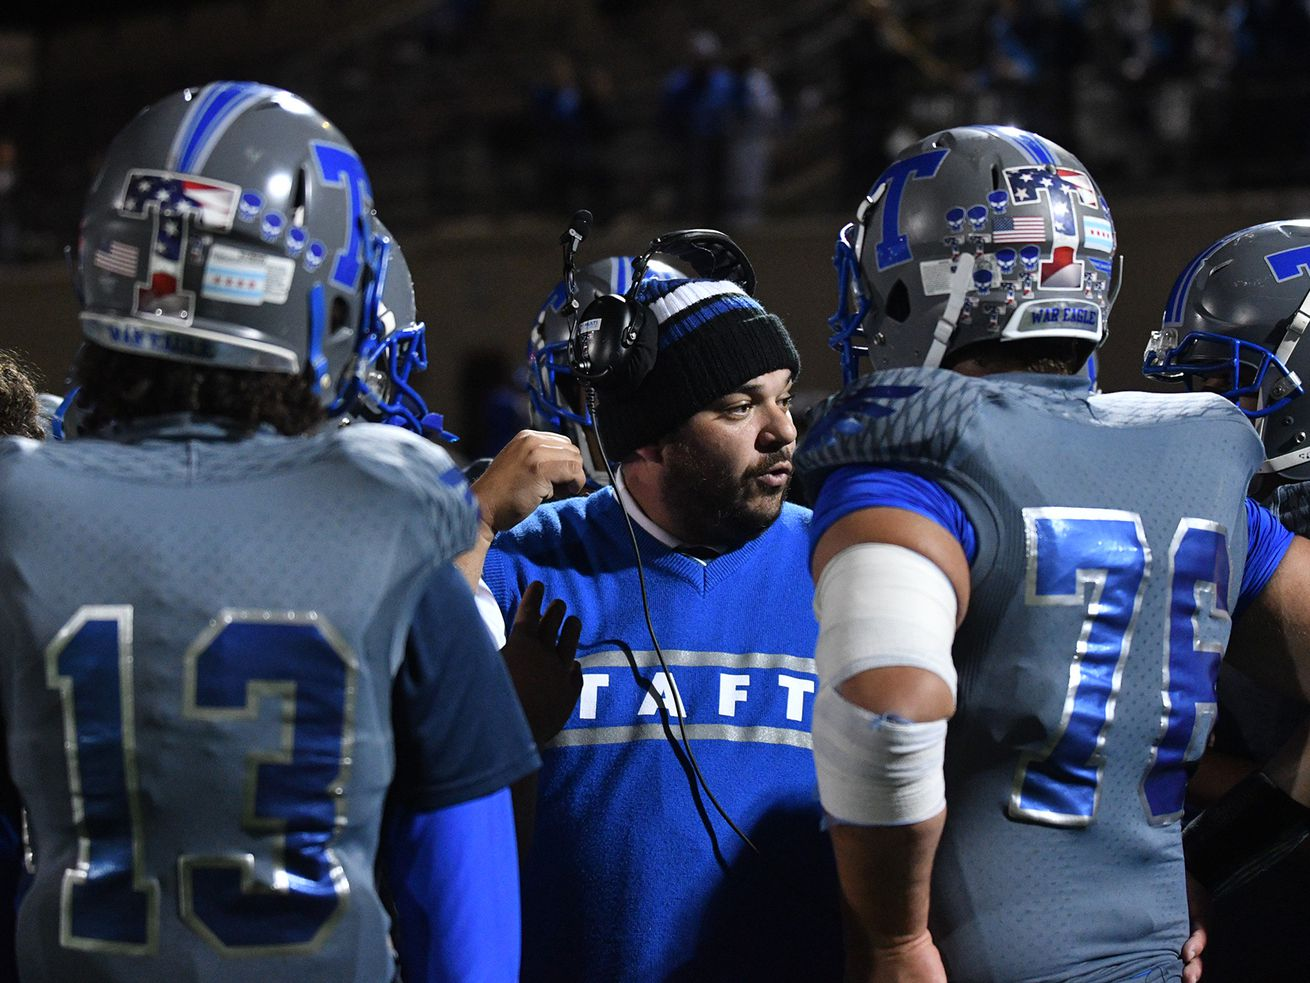 Taft coach John Tsarouchas talks to his team during a time out against Perspectives in 2018.